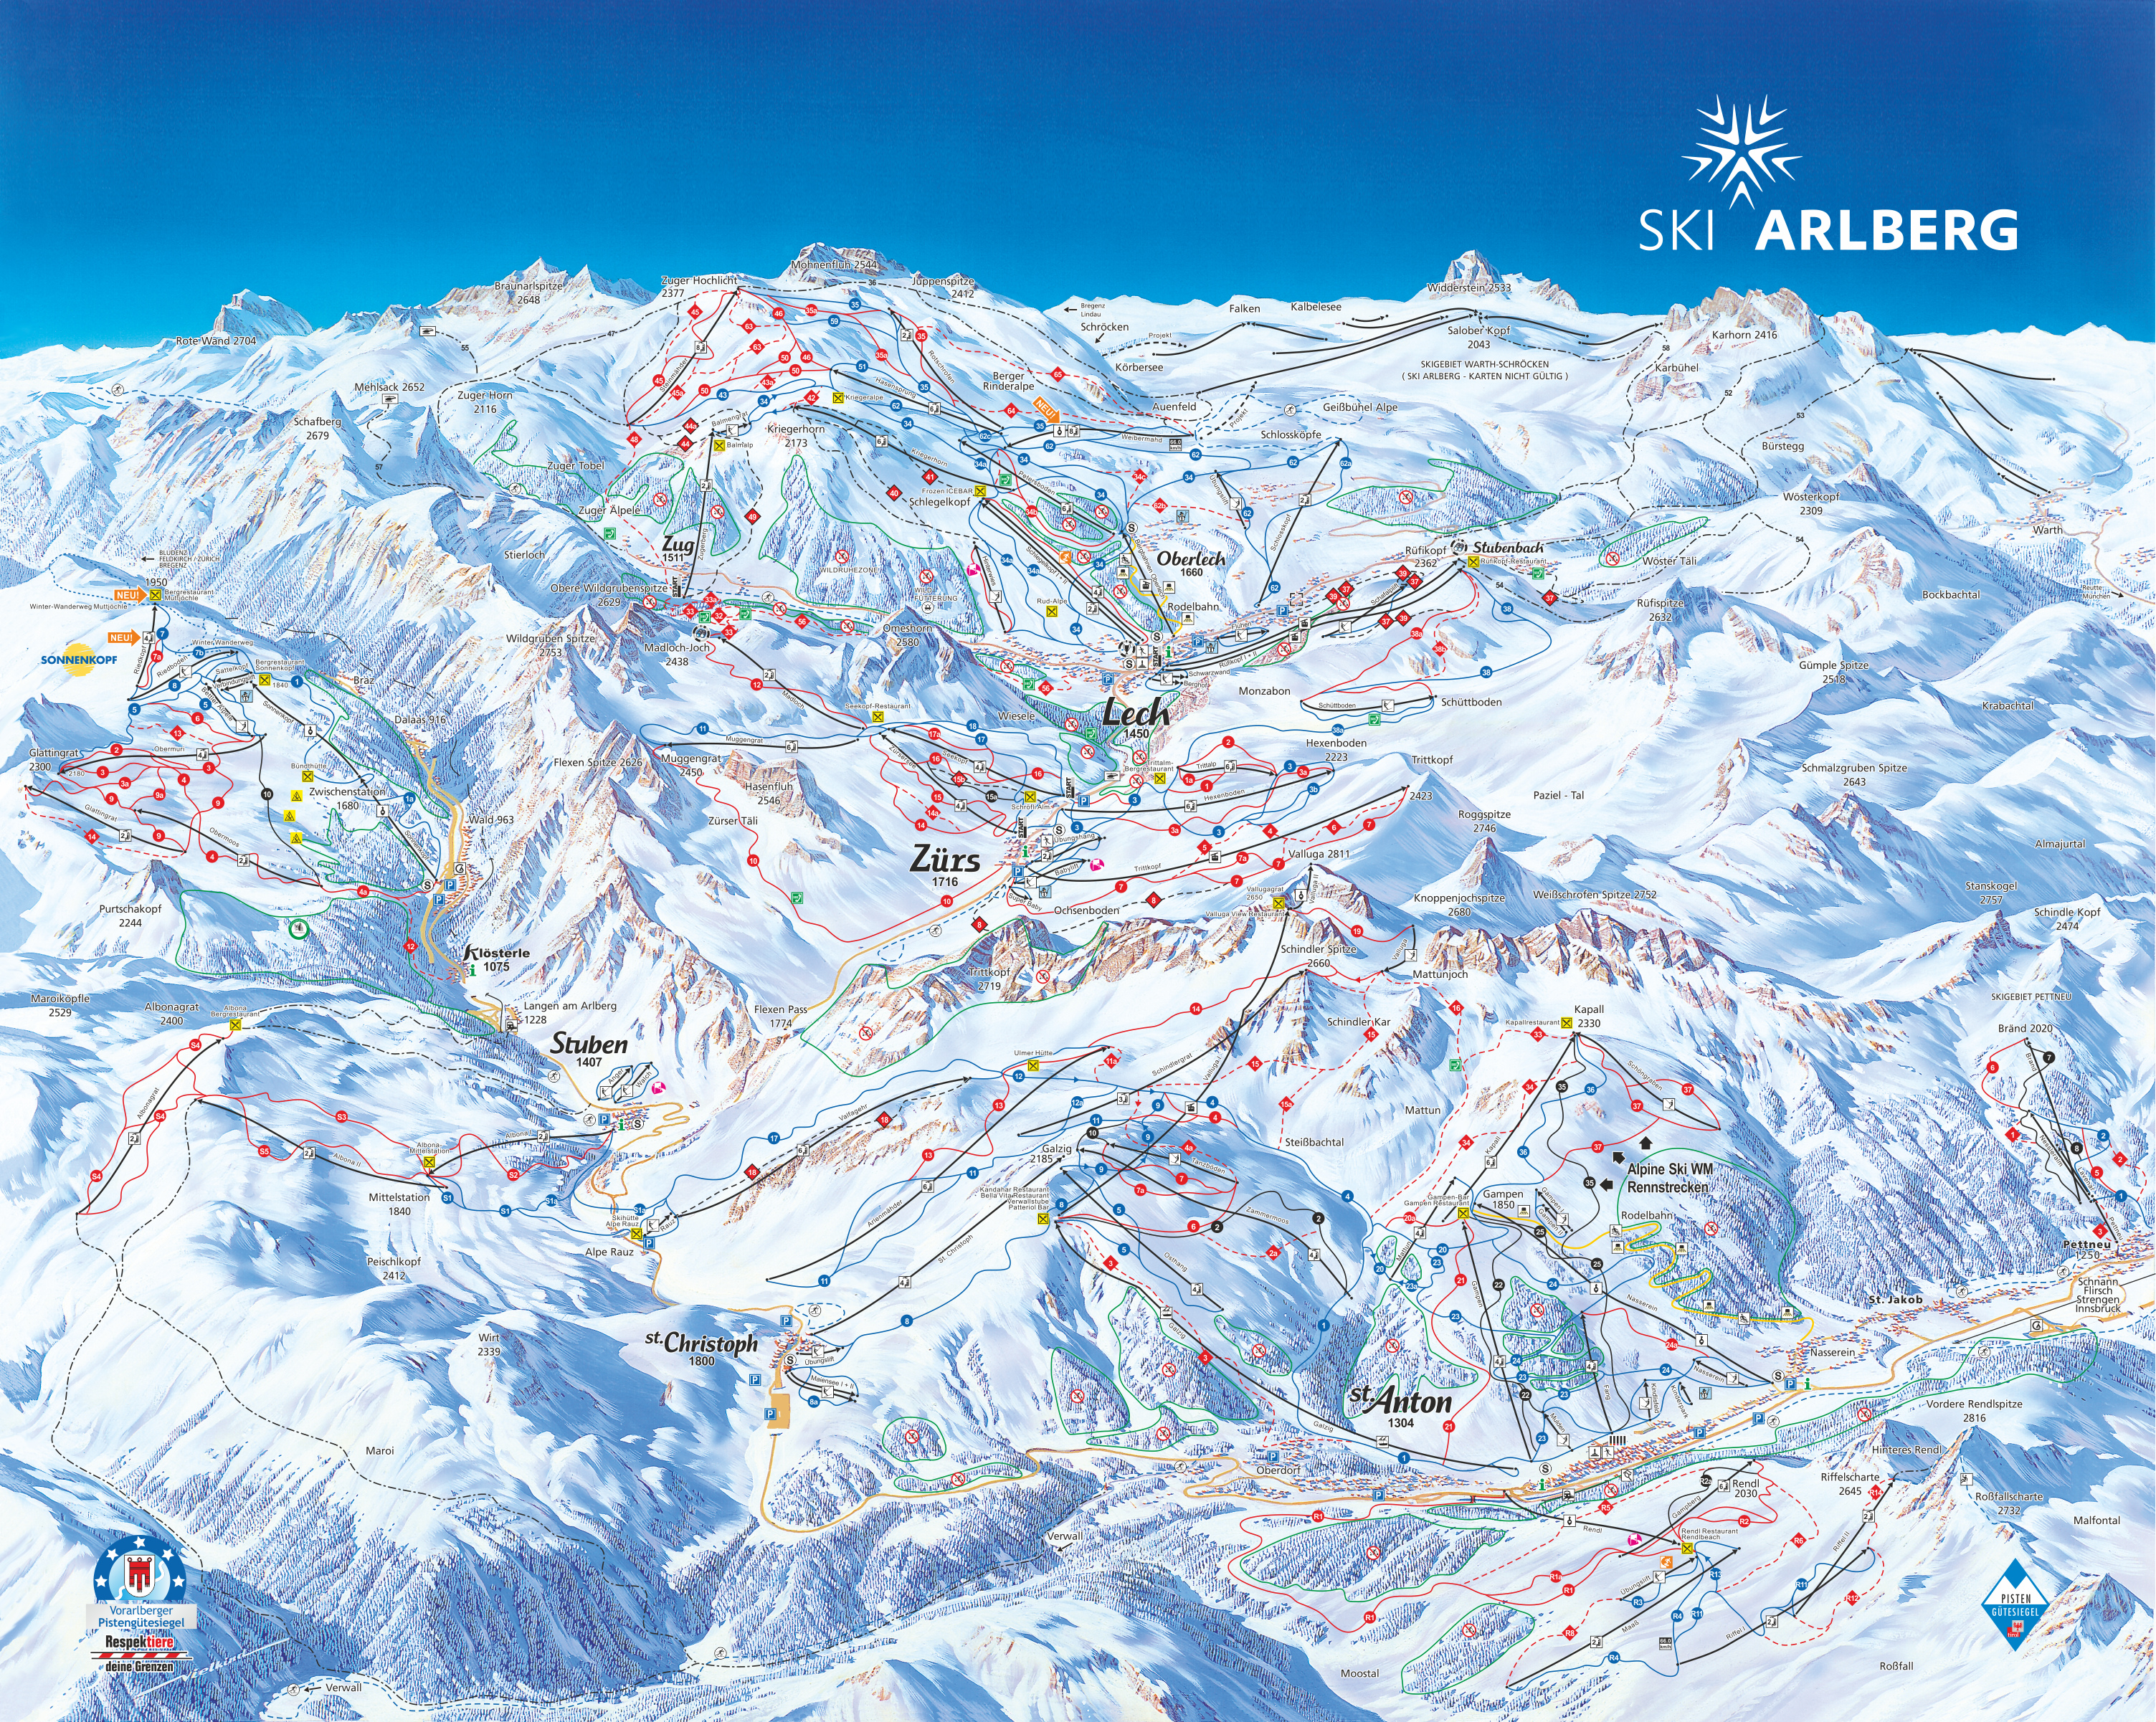 map of colorado ski areas with 627 on Piste Map furthermore Colorado Elevation Map moreover Stevens Pass Ski Trail Map as well Steamboat 20Smokehouse likewise The Best Ski Town Celebrations For New Years Eve.